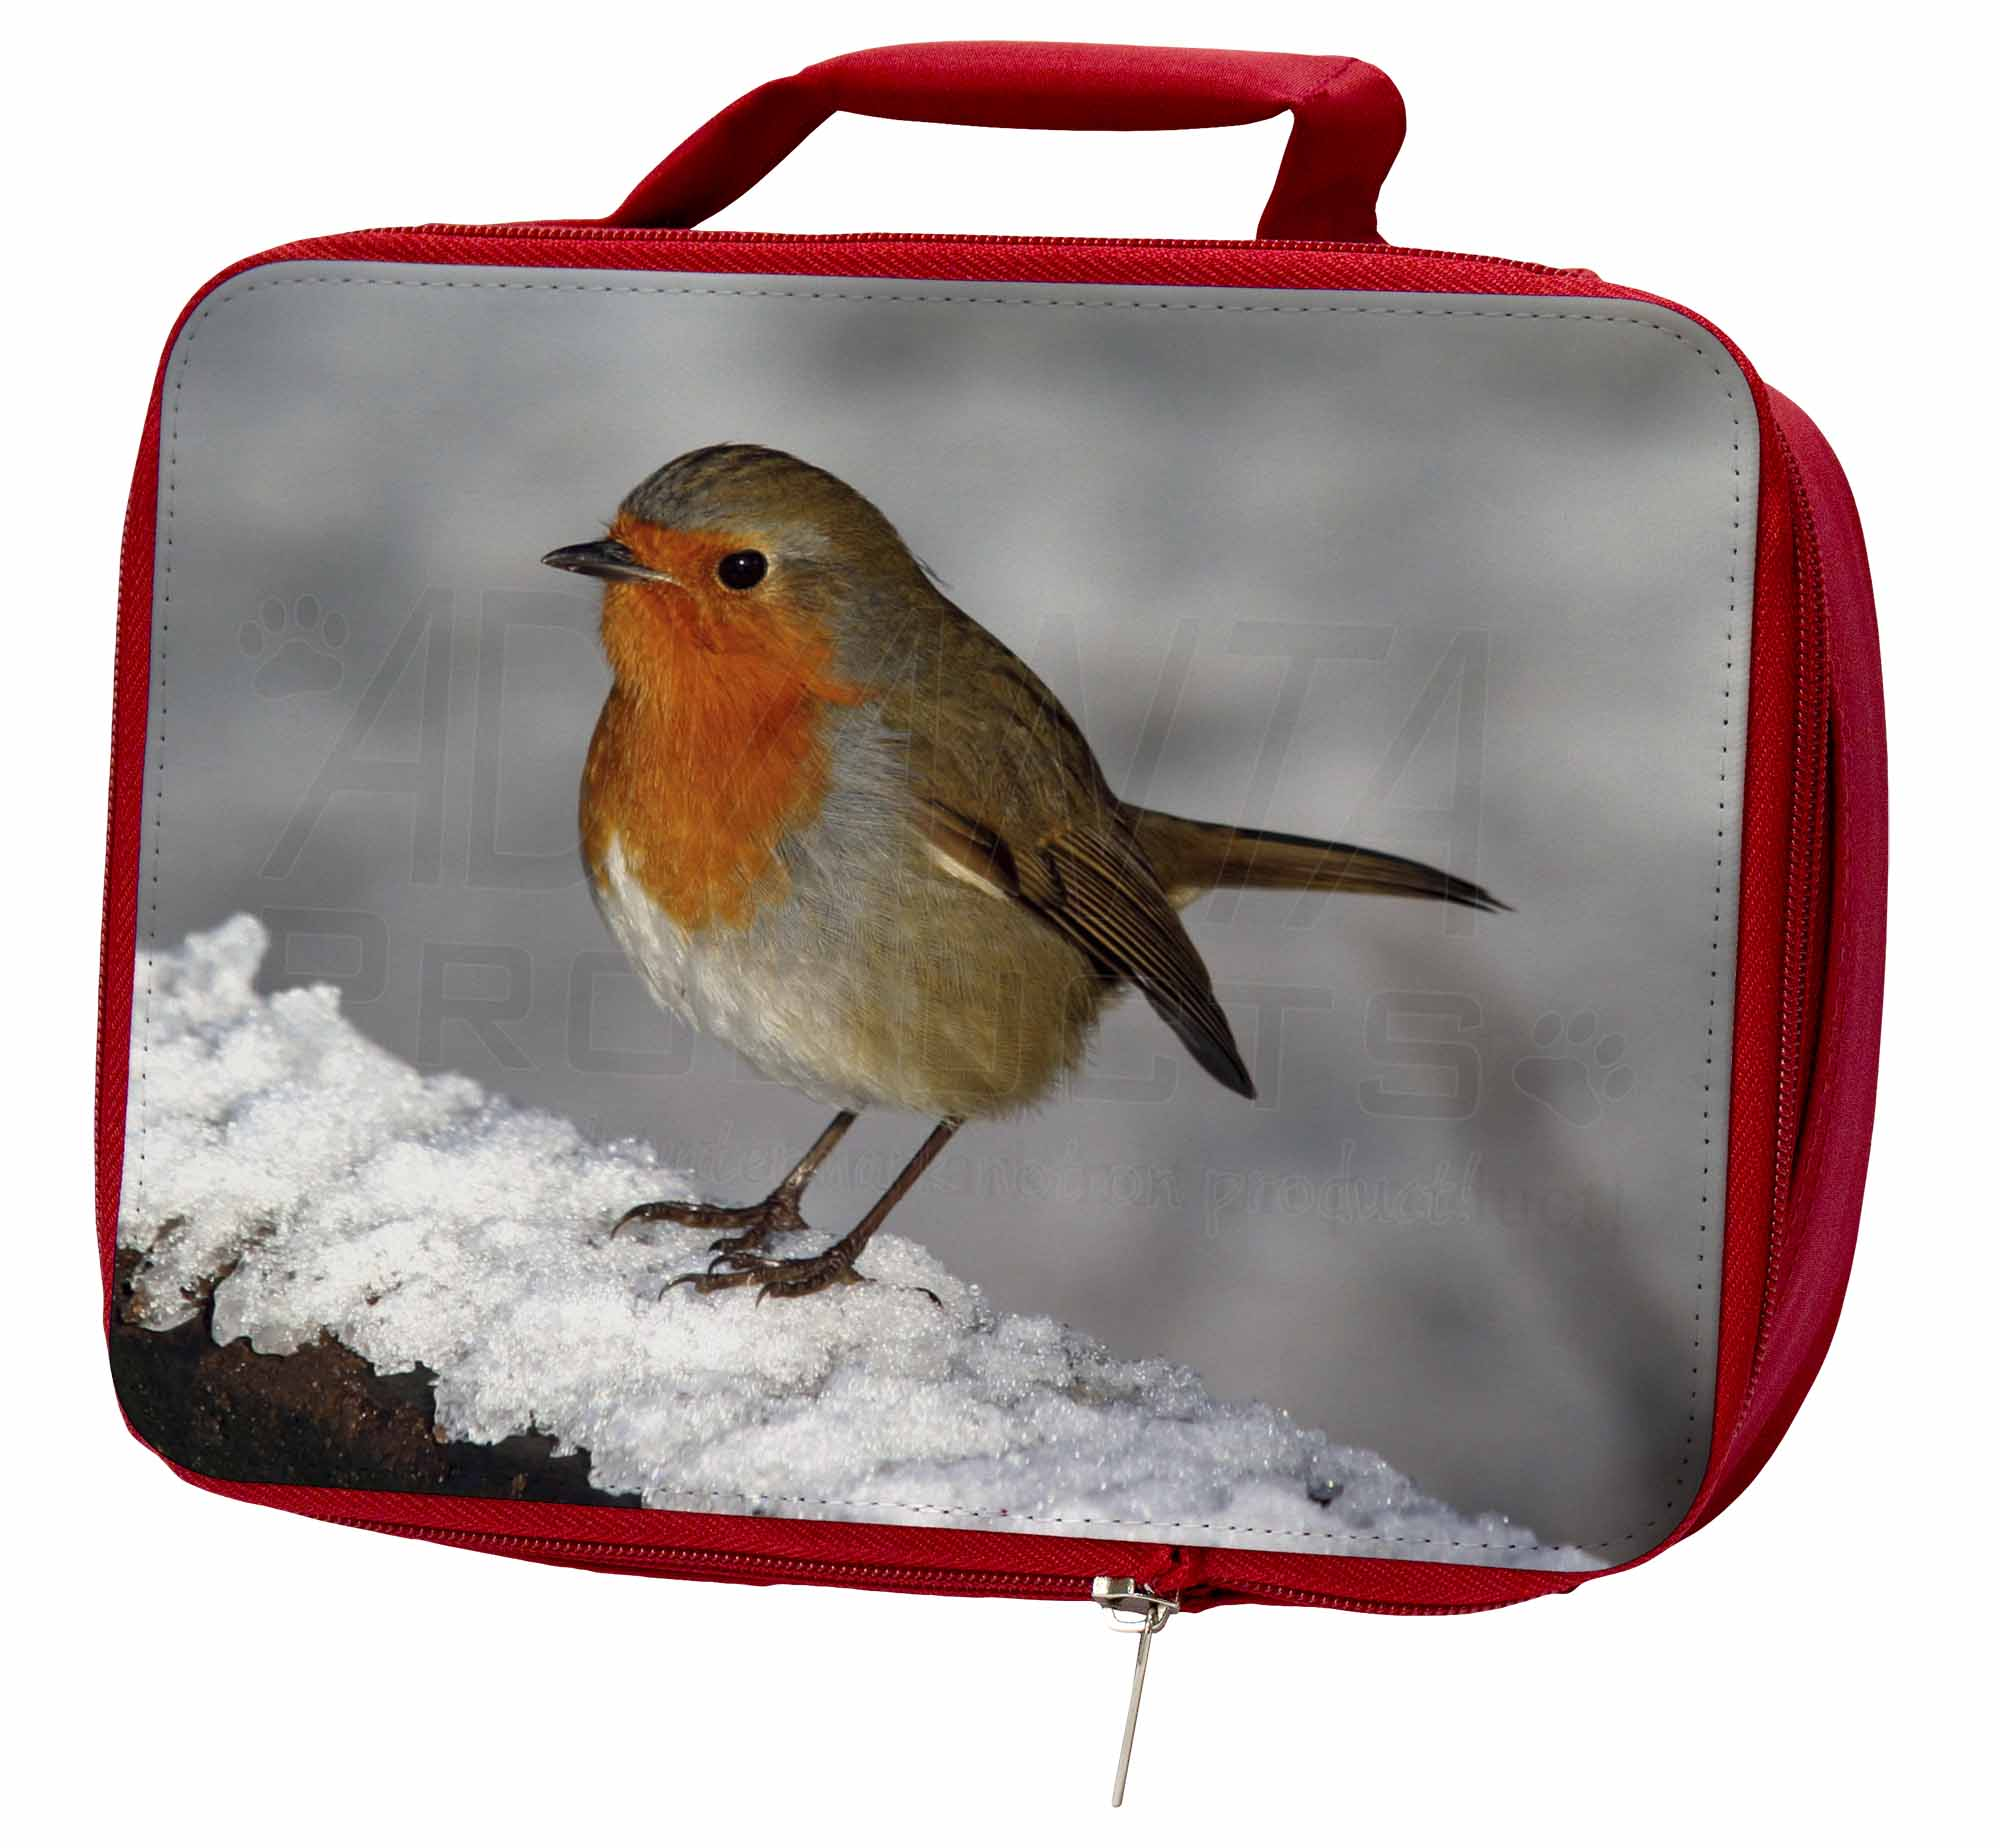 Robin on Lunch Snow Wall Insulated Red School Lunch on Box/Picnic Bag, AB-R15LBR 093411